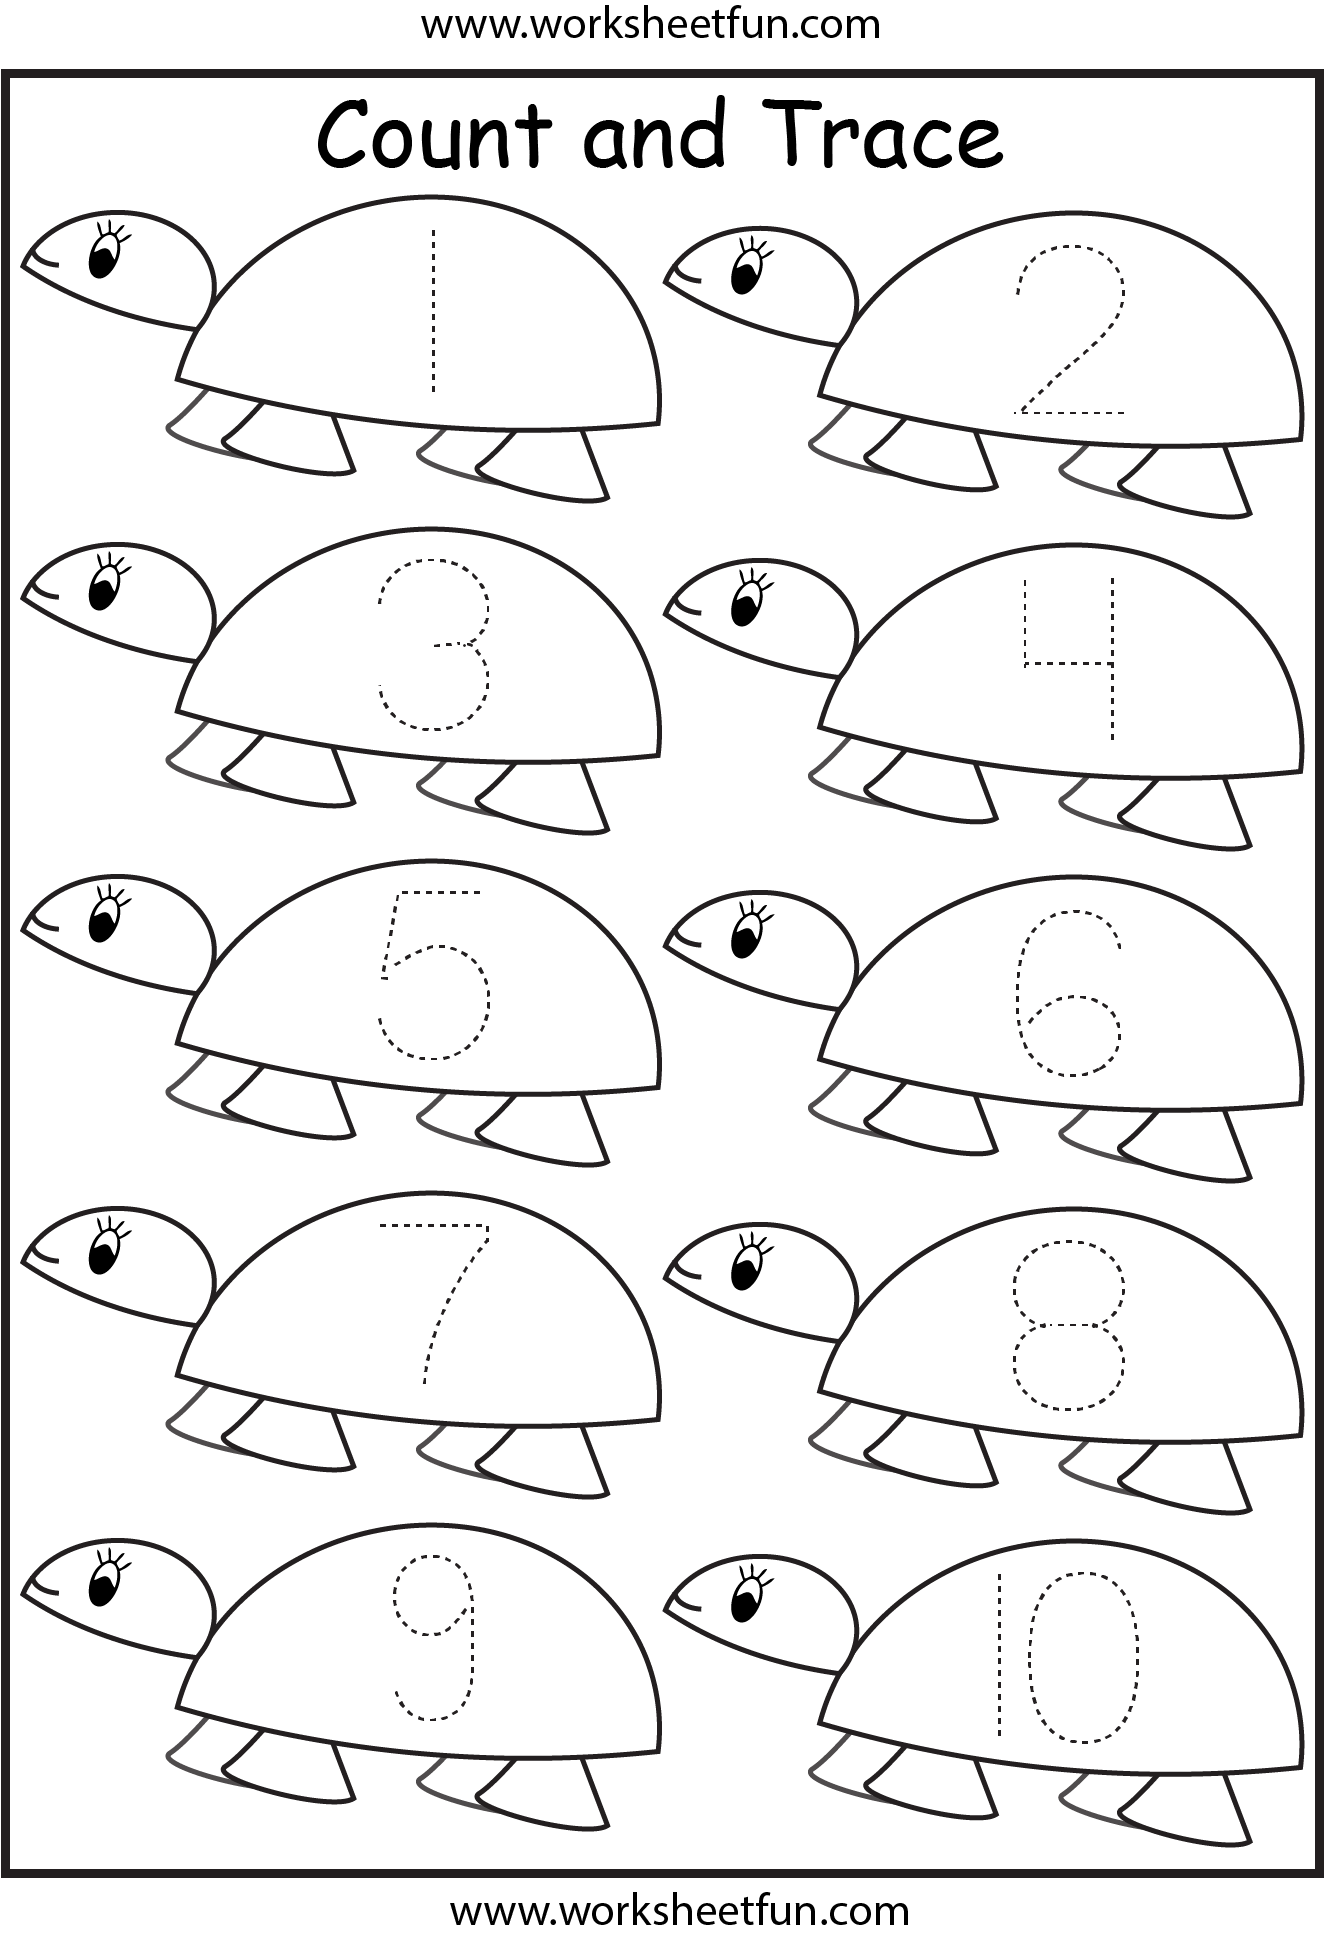 Preschool Worksheets Numbers 1 20 : Writing numbers printable worksheets number